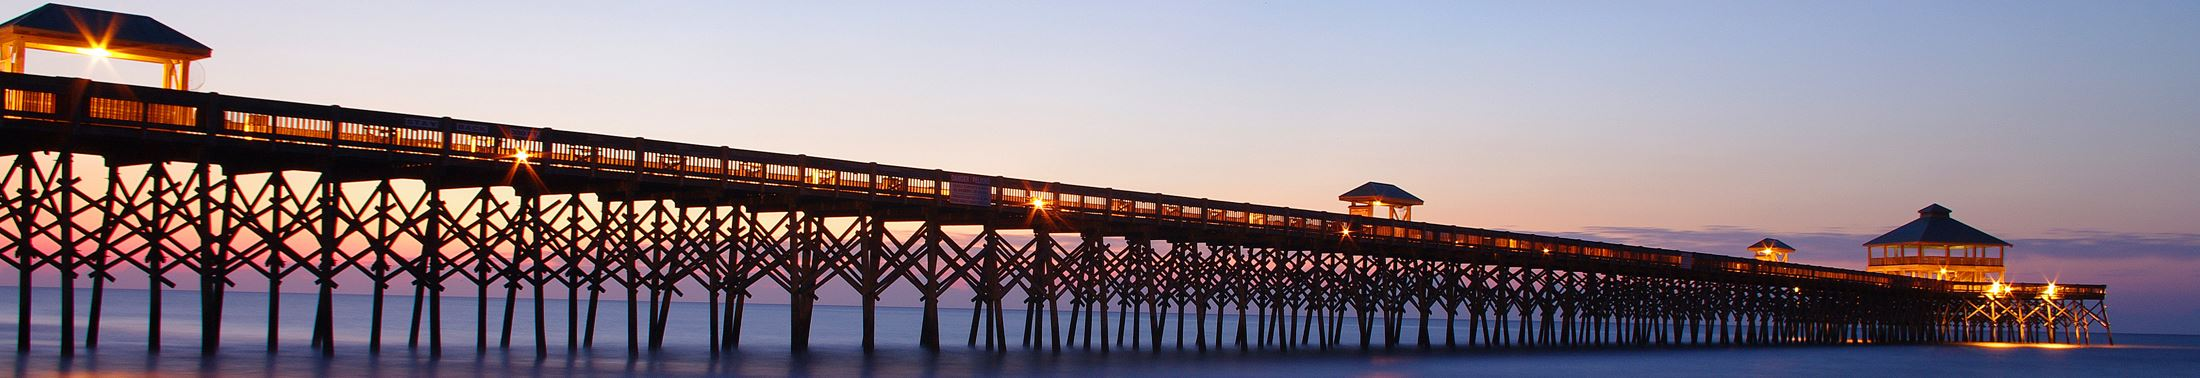 View of the Folly Beach Fishing Pier